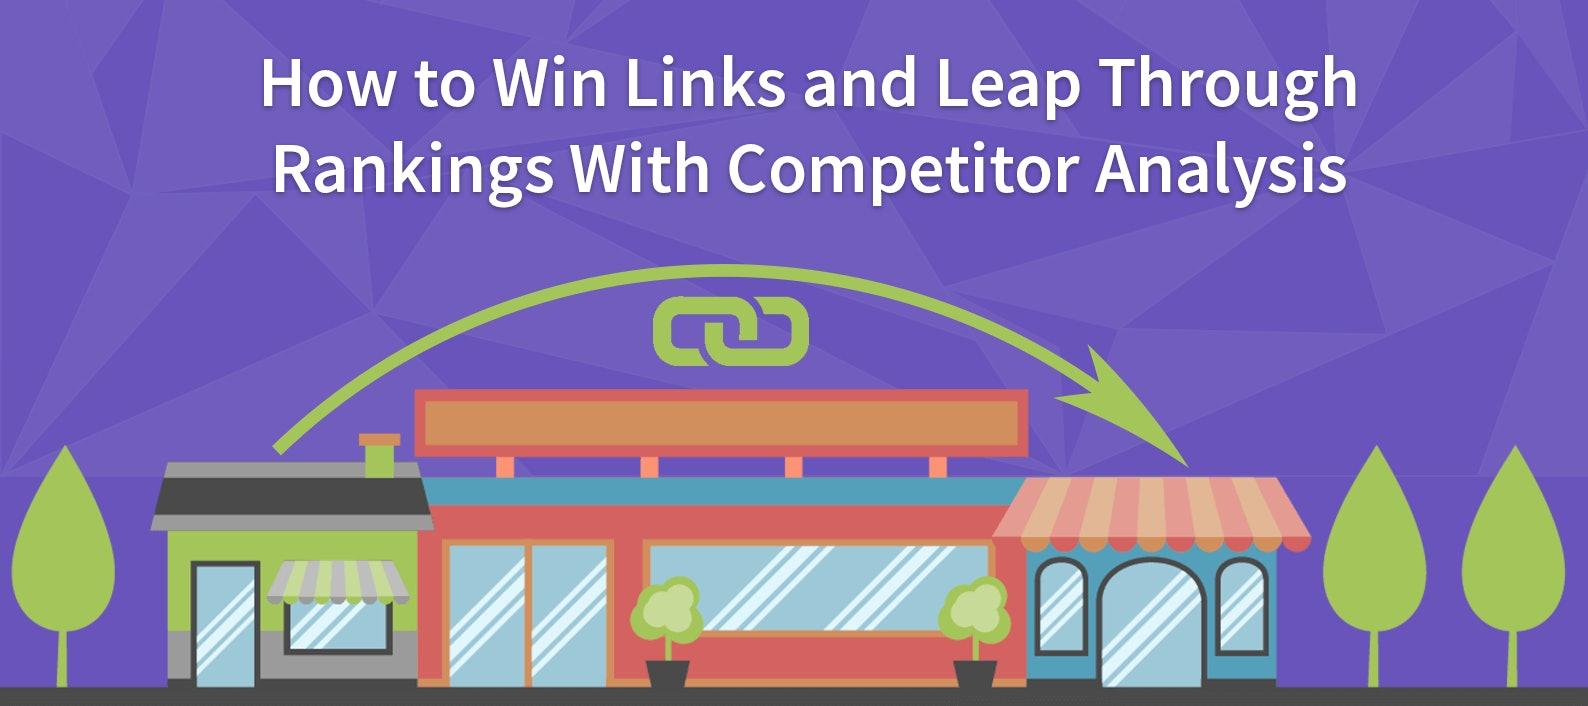 How to Win Links and Leap Through Rankings With Competitor Analysis